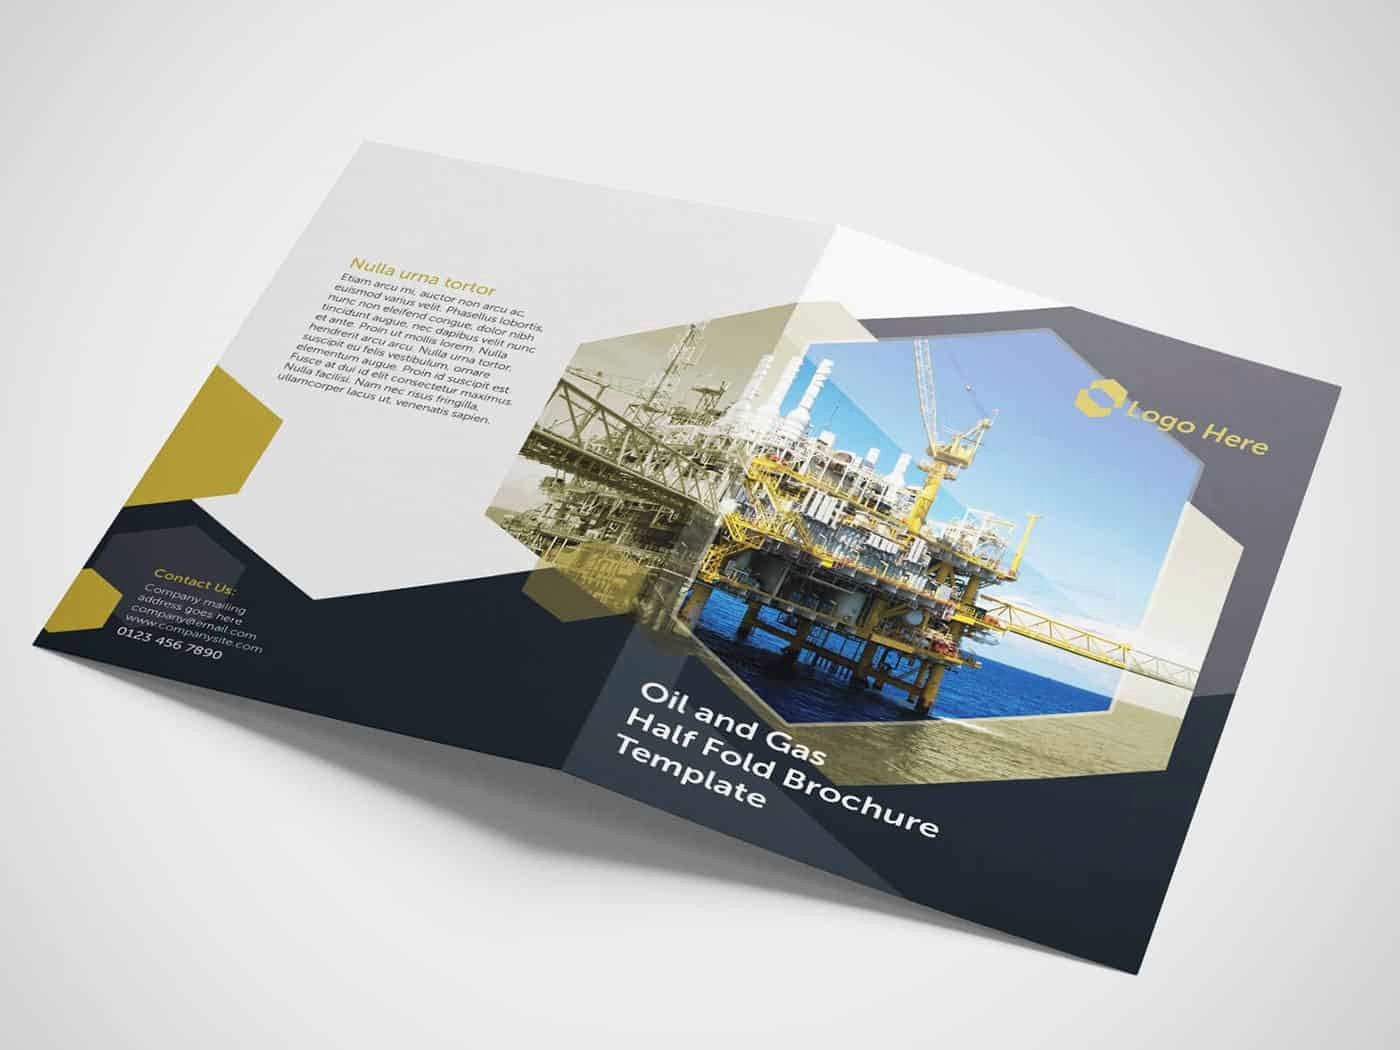 Half Fold Brochure Template New Half Fold Oil and Gas Brochure Template On Vectogravic Design